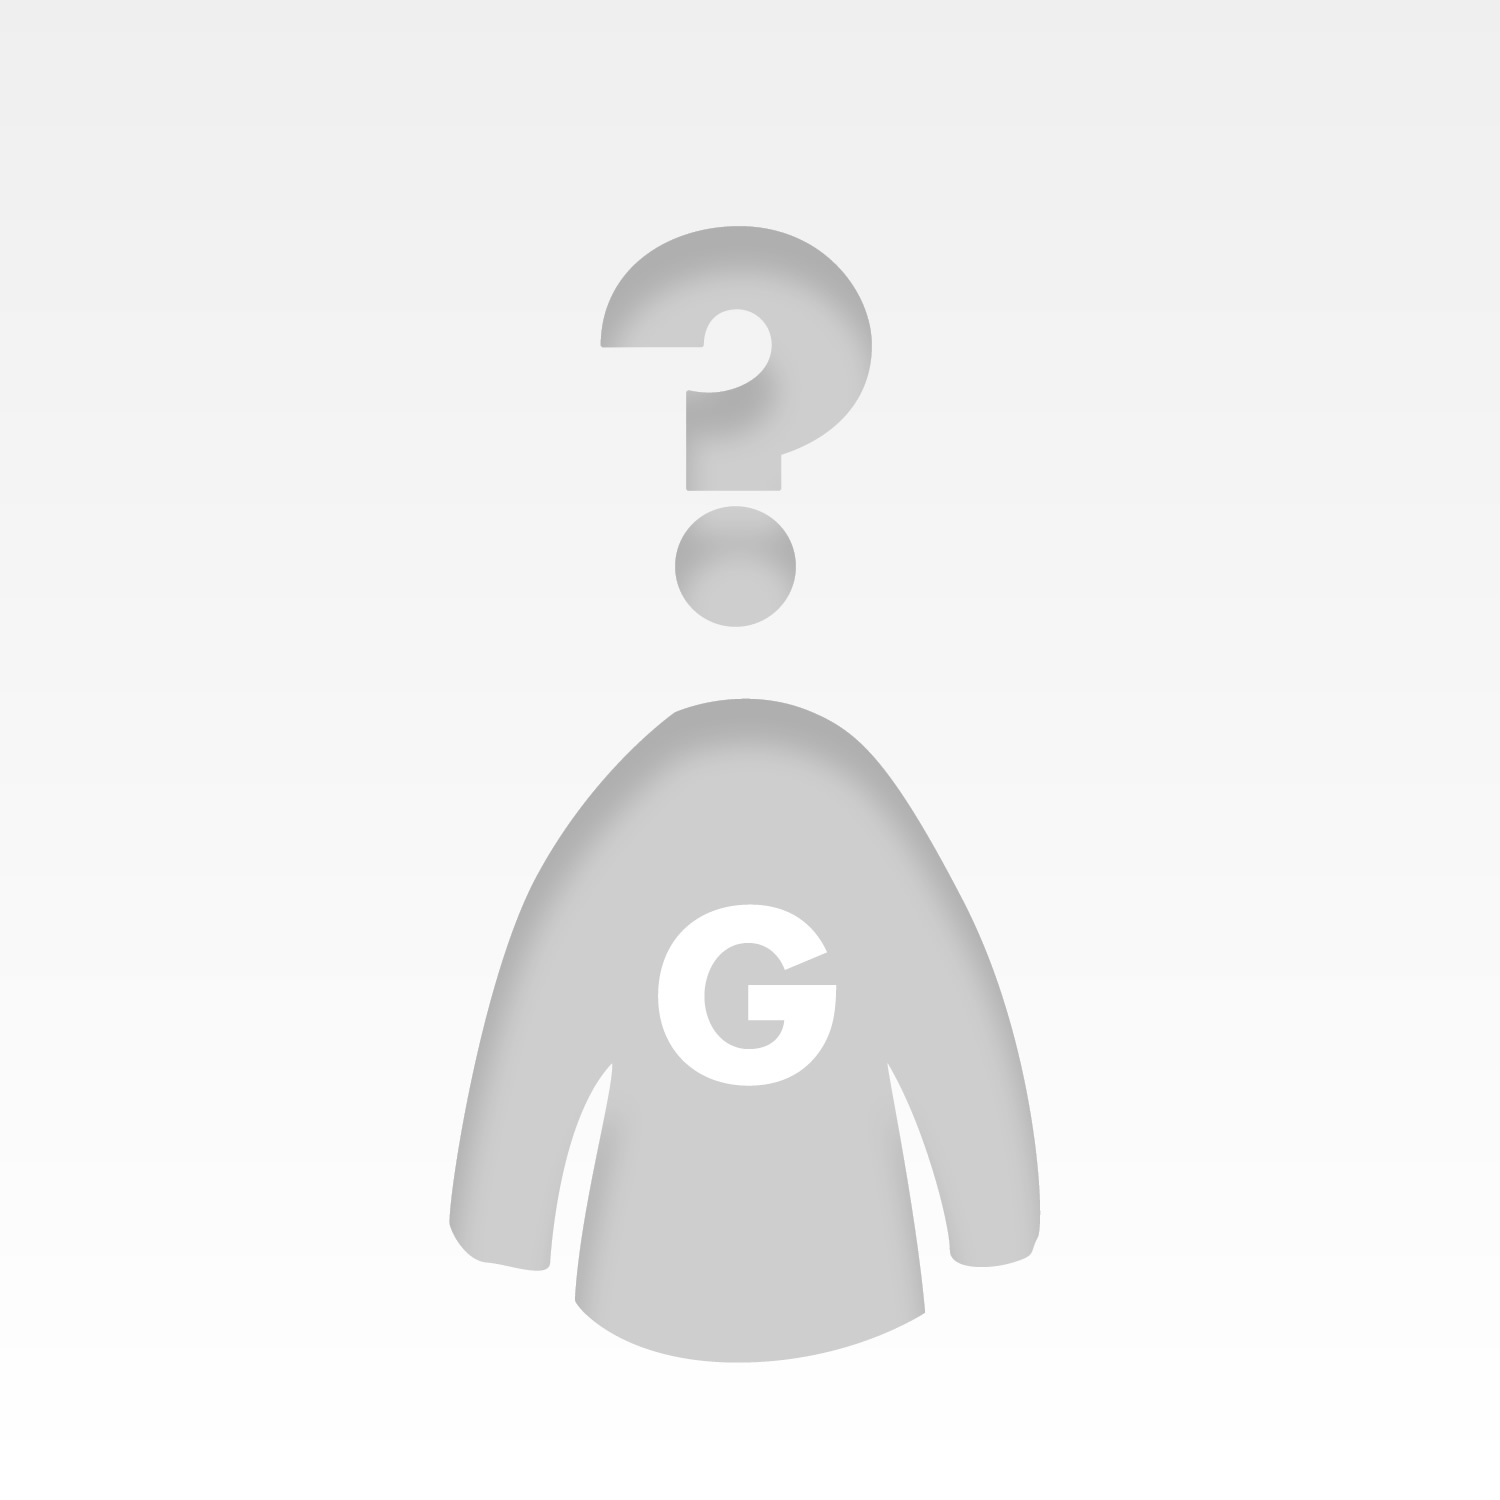 chasegregory1\'s avatar